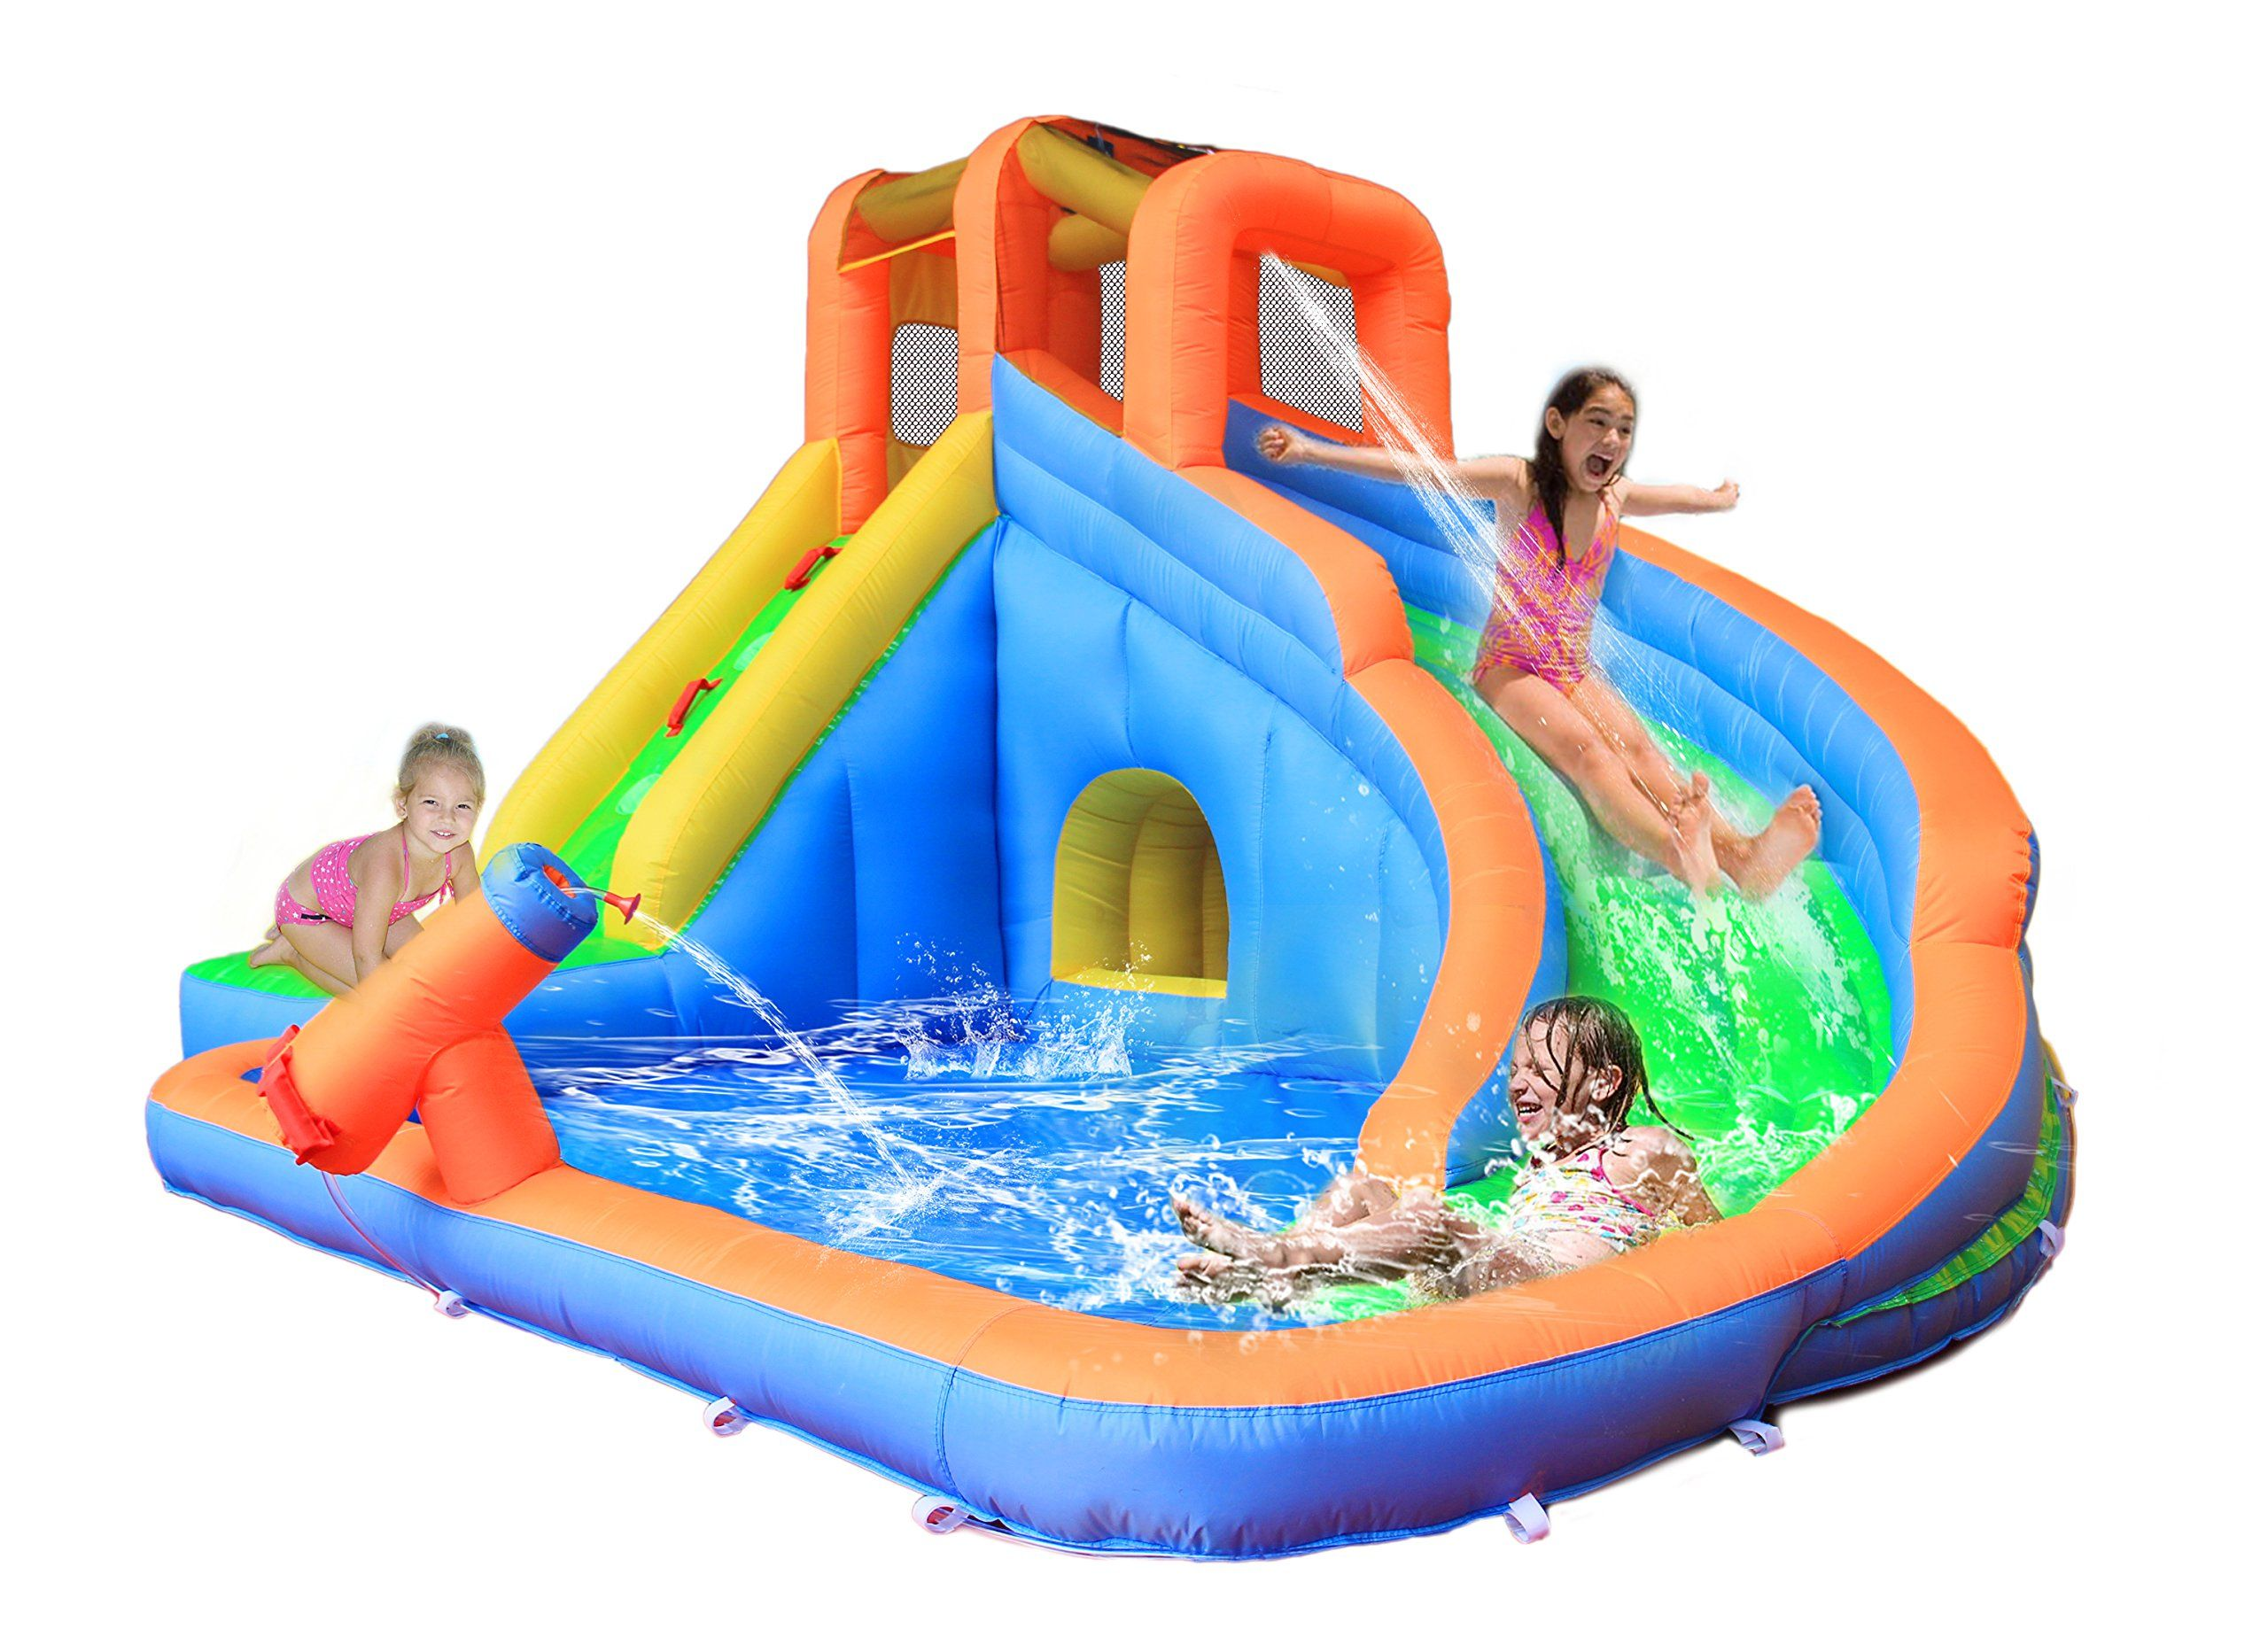 bestparty inflatable twin falls water slide bouncer and pool with